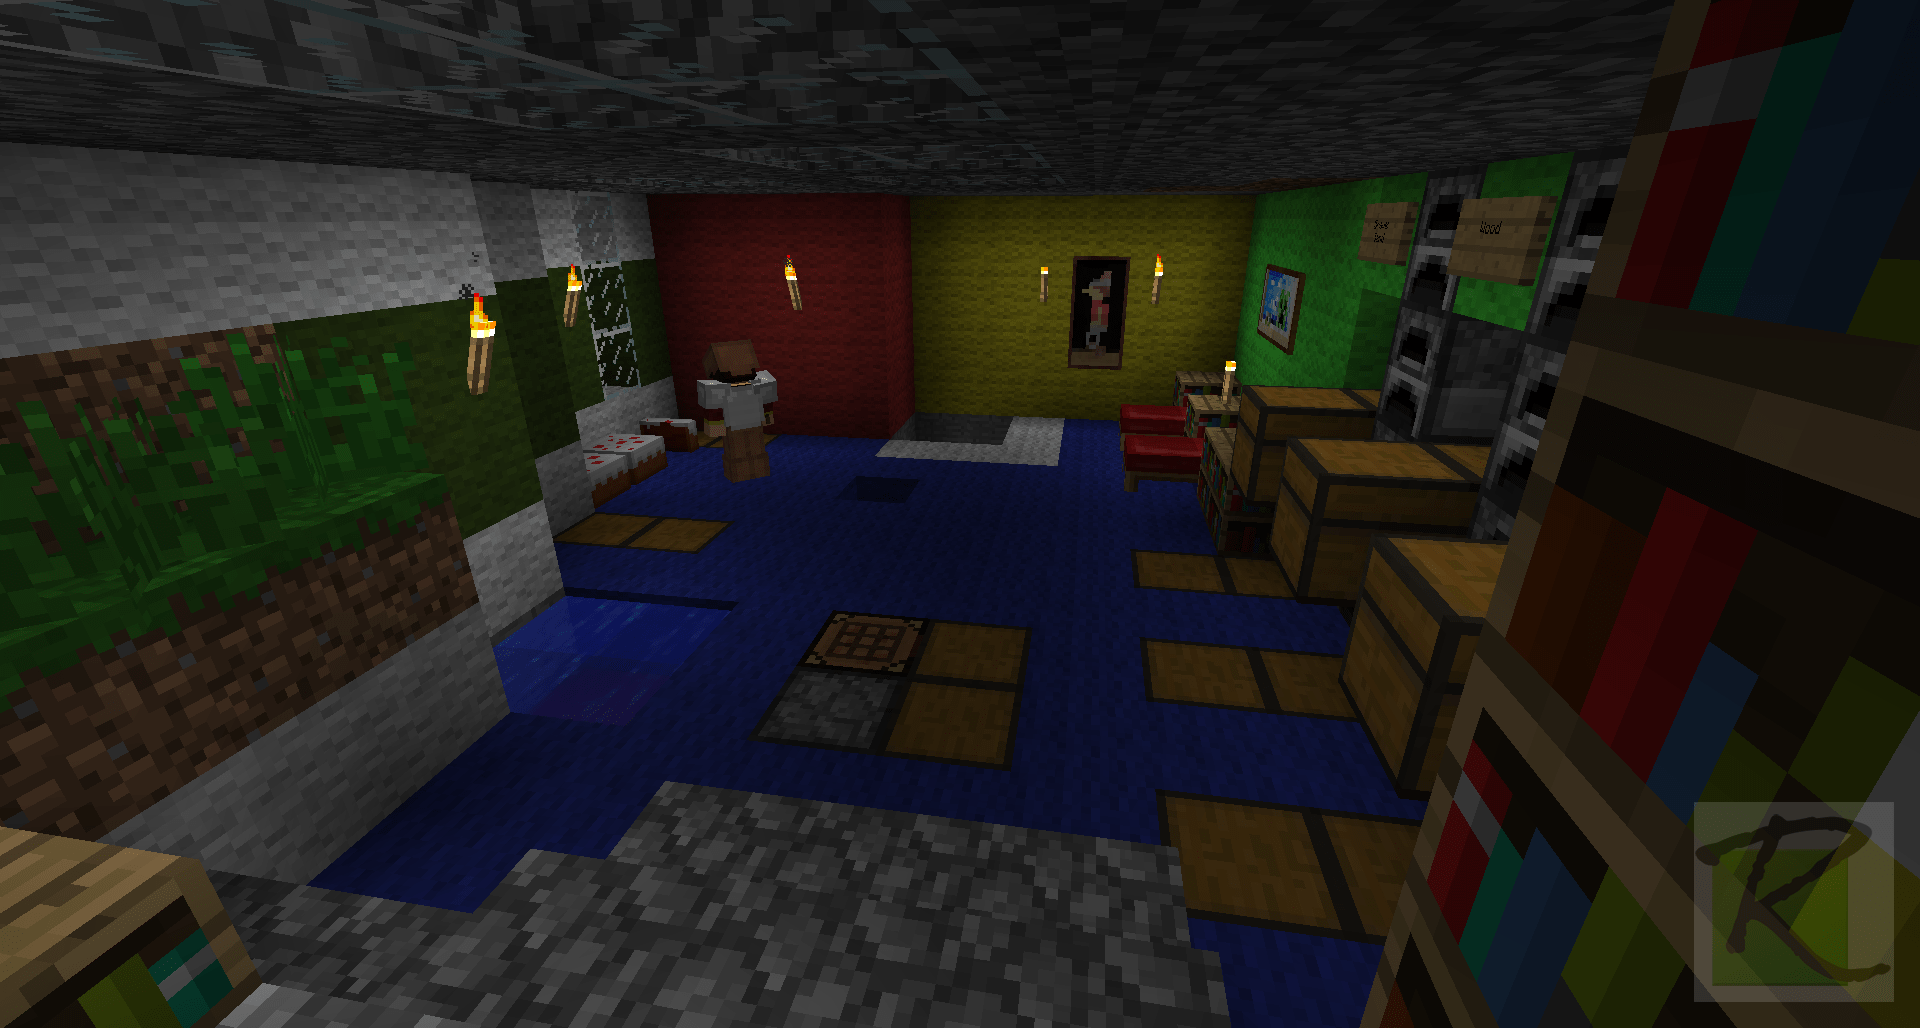 Interior Design Ideas Minecraft